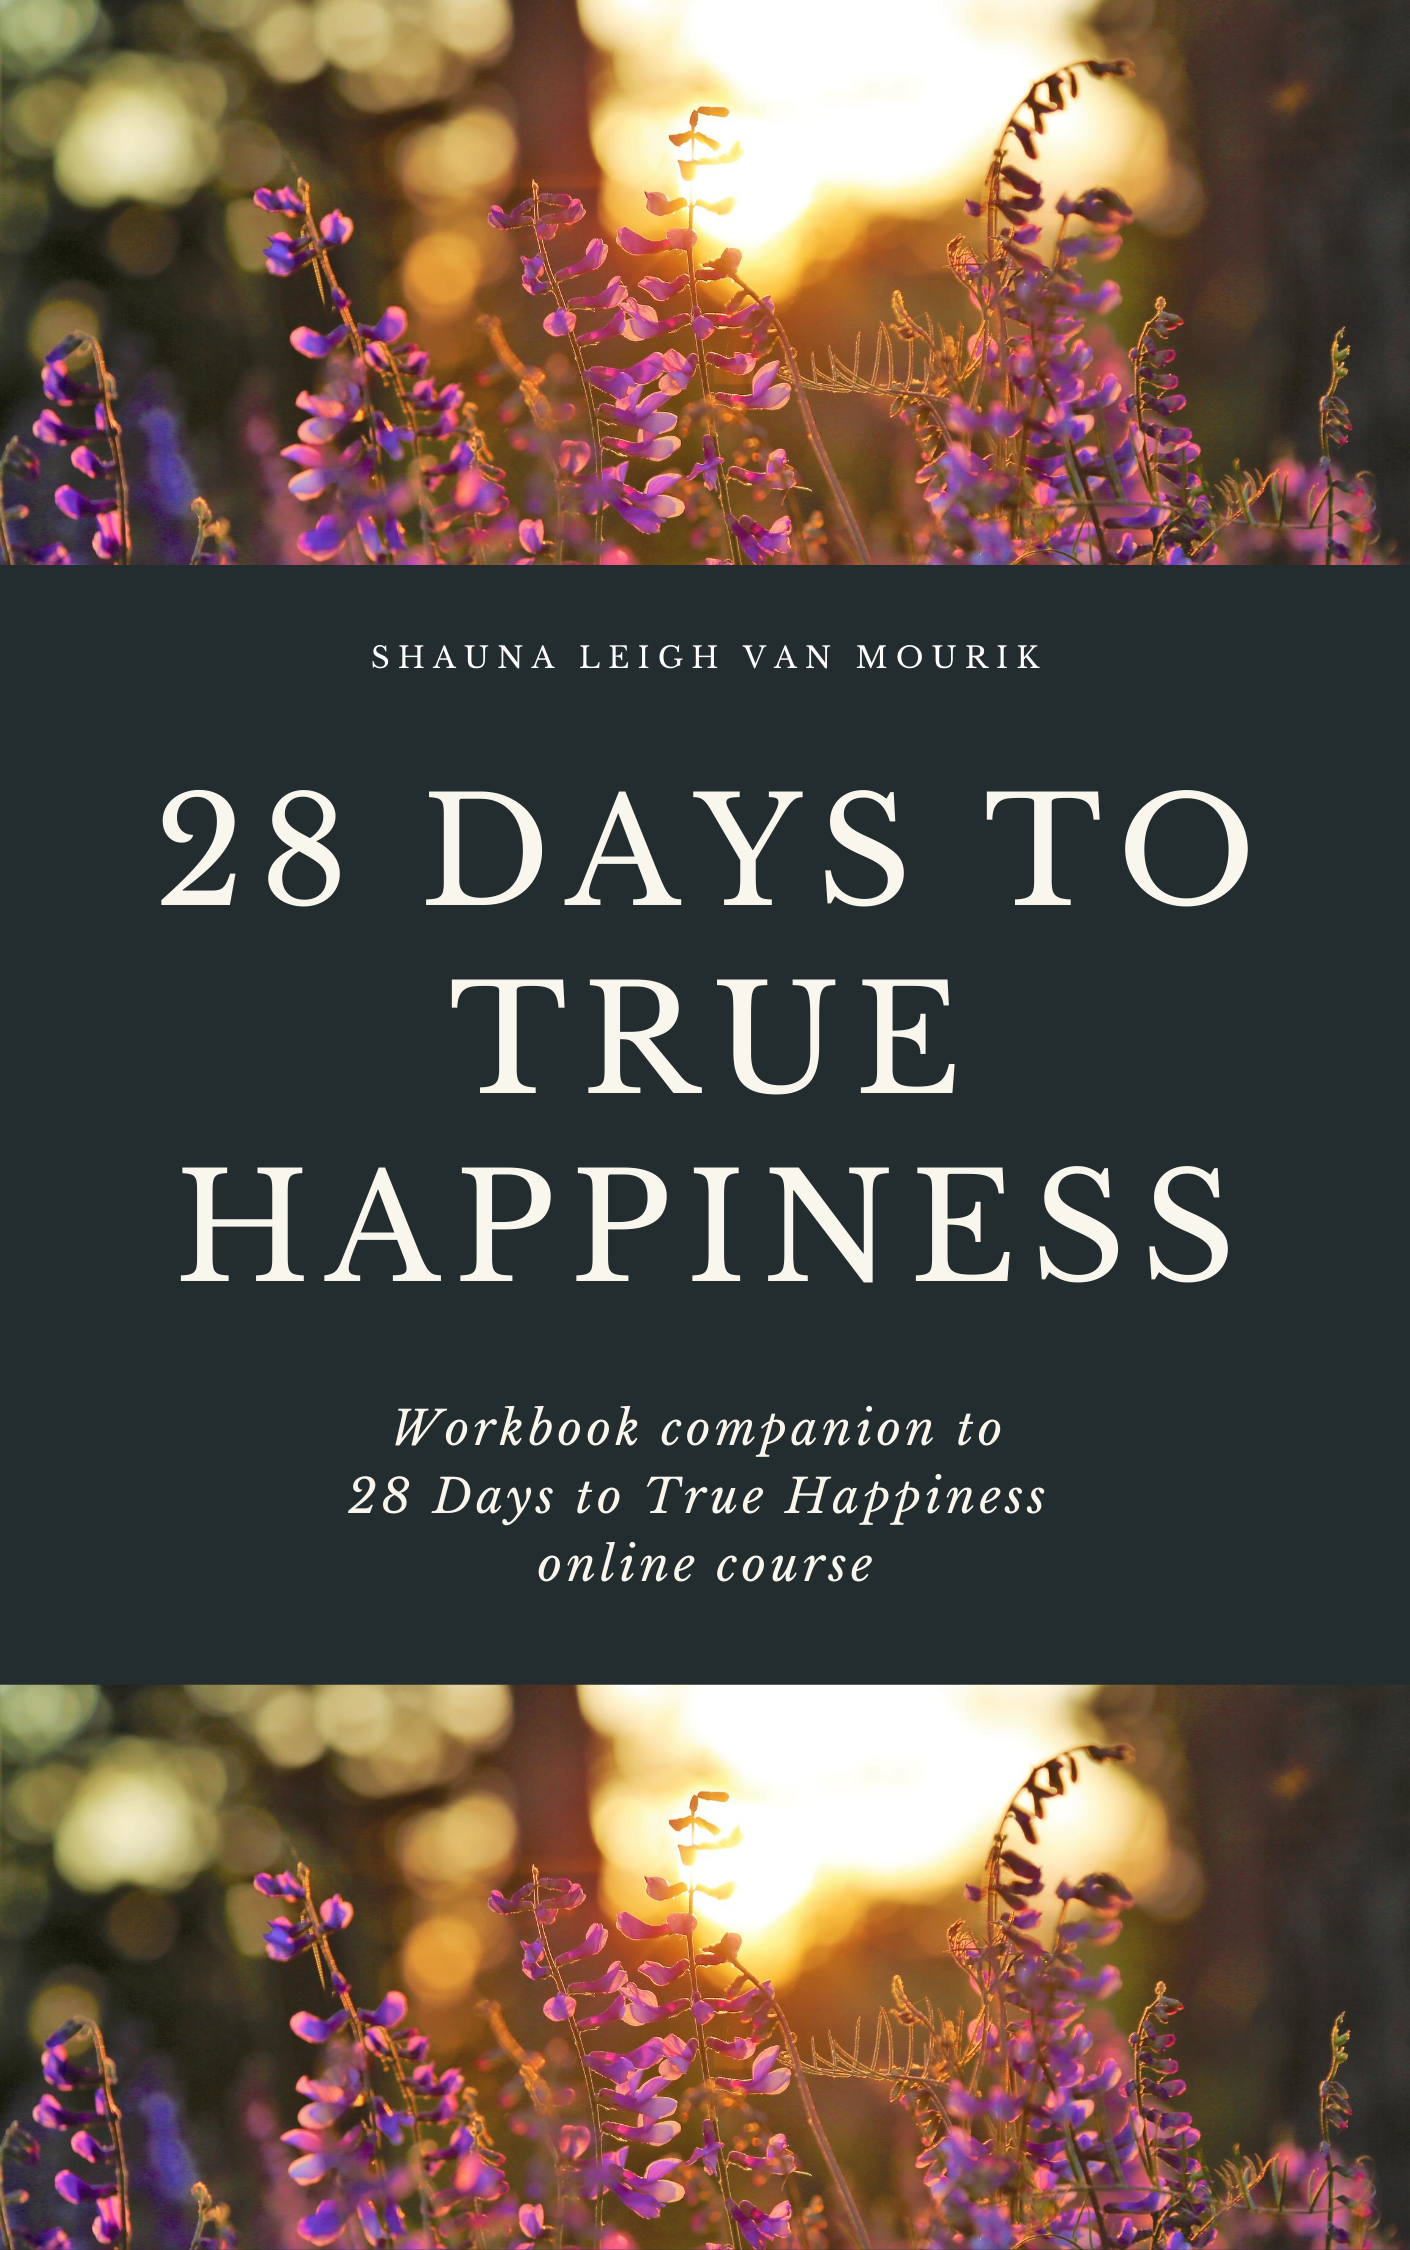 28 Days to true Happiness